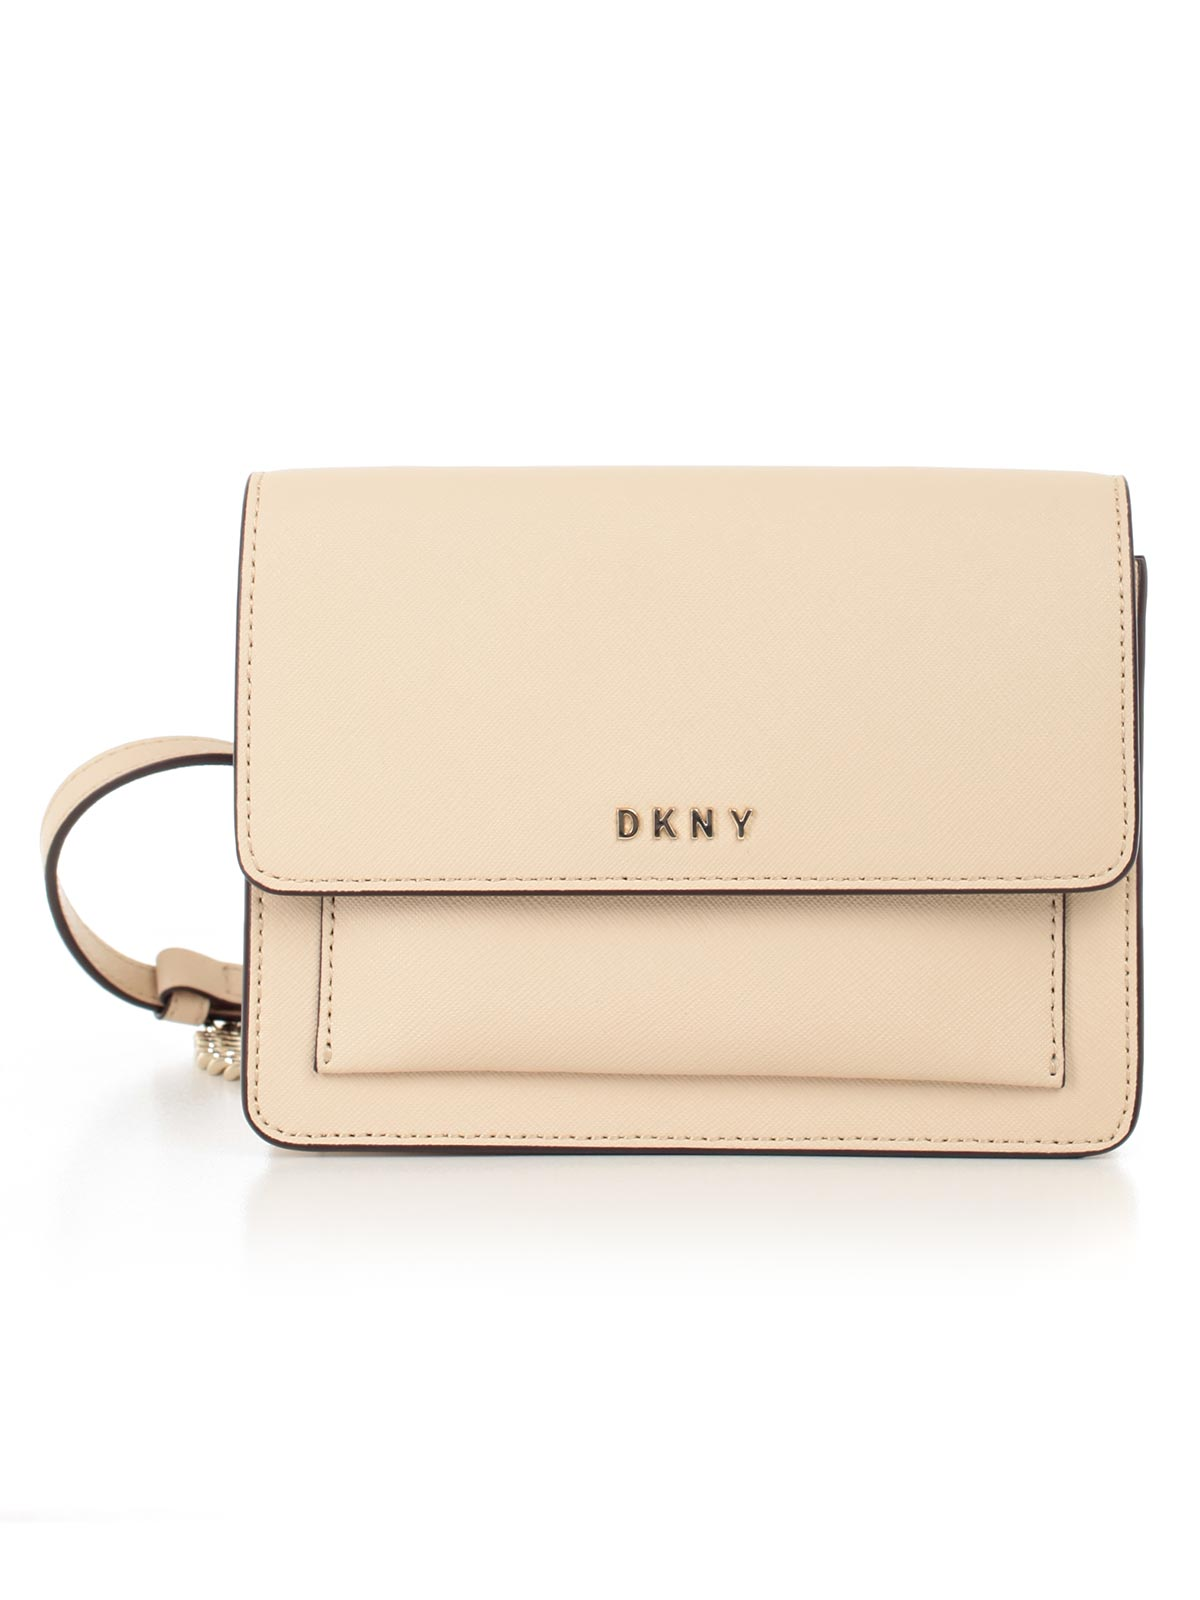 Picture of DKNY BAG MINI FLAP CROSSBODY  TRACOLLINA SAFFIANO